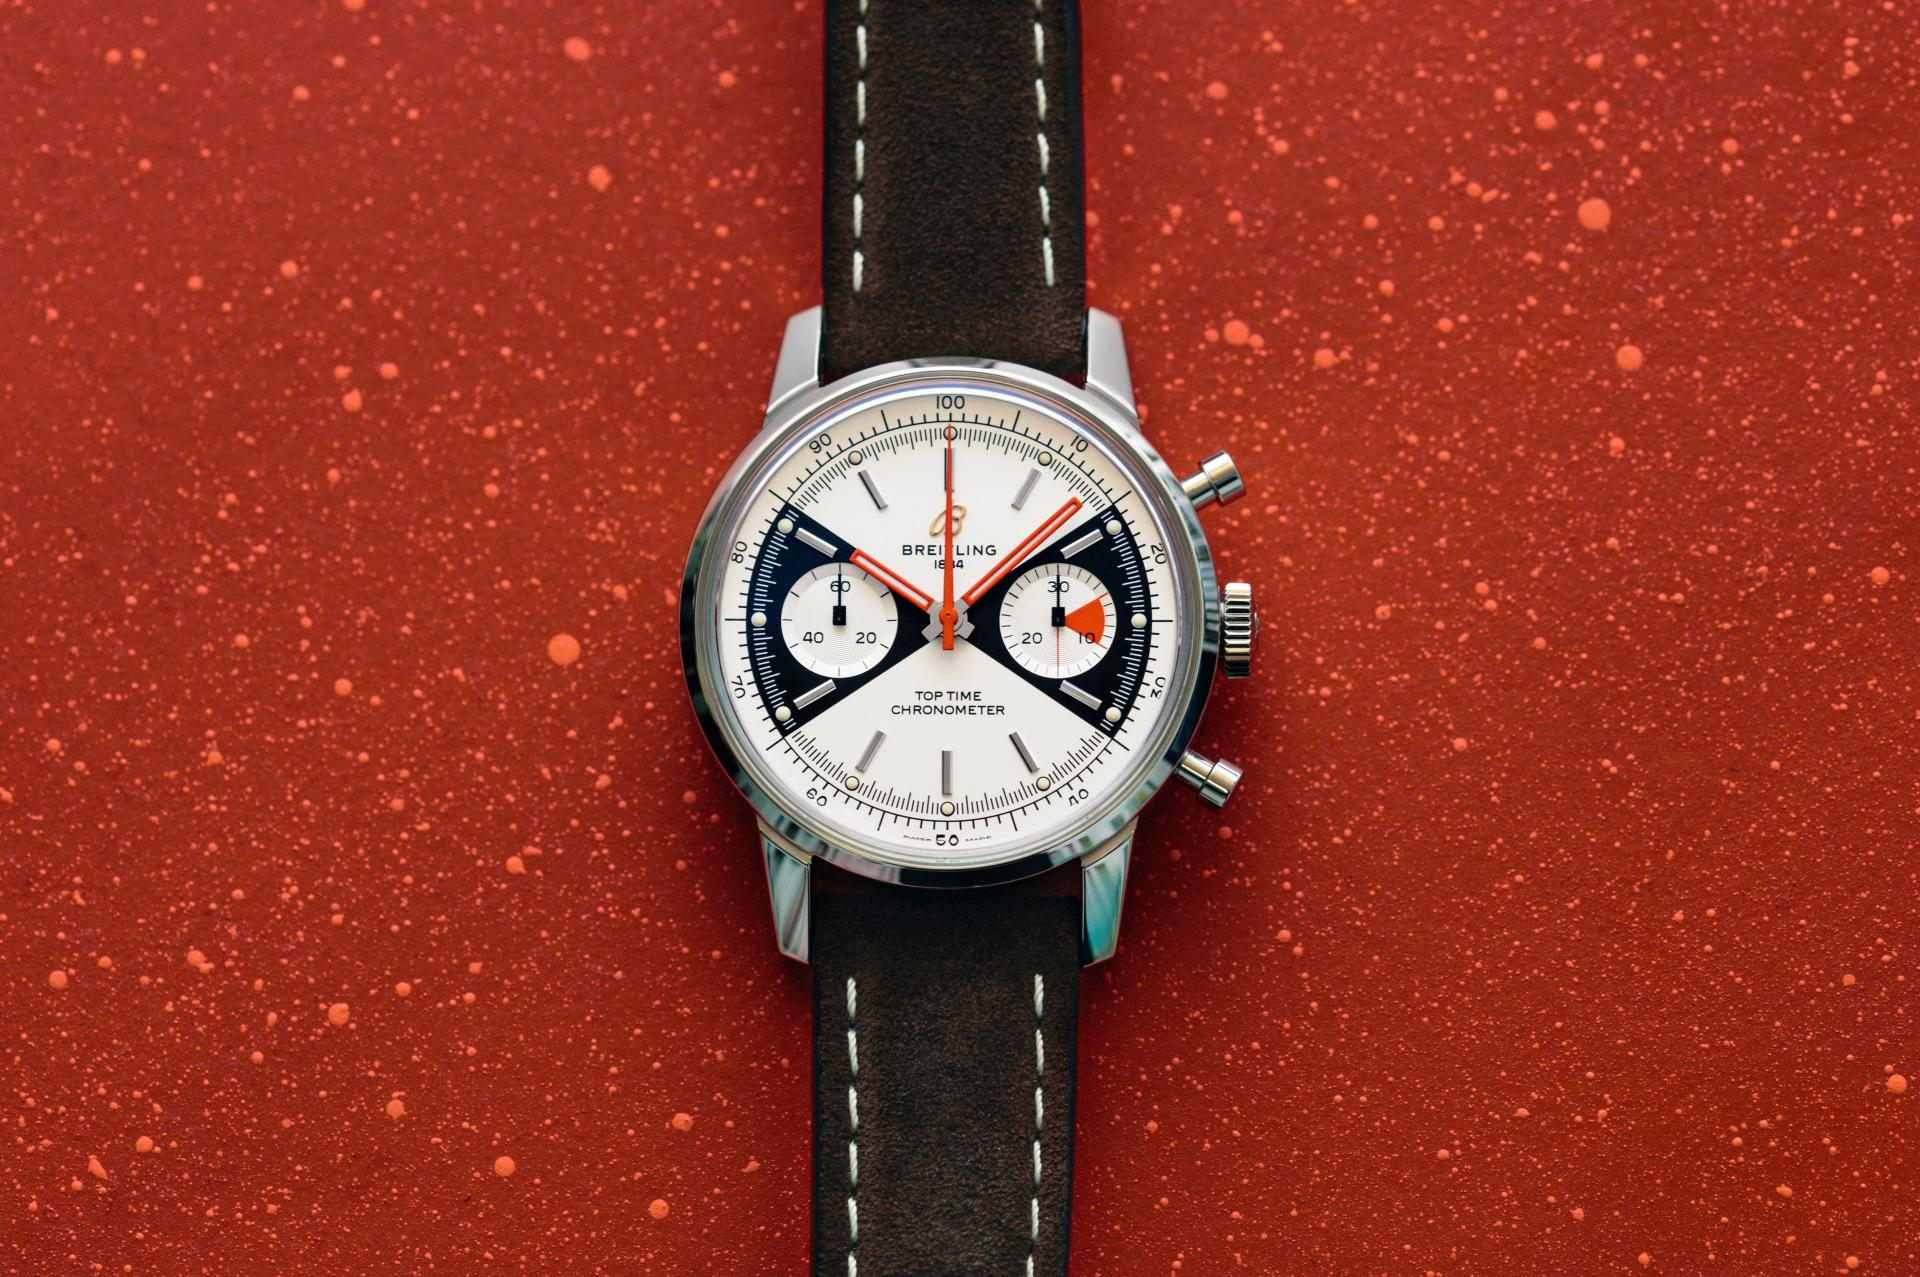 Breitling Top Time Limited Edition | Watch of the Week